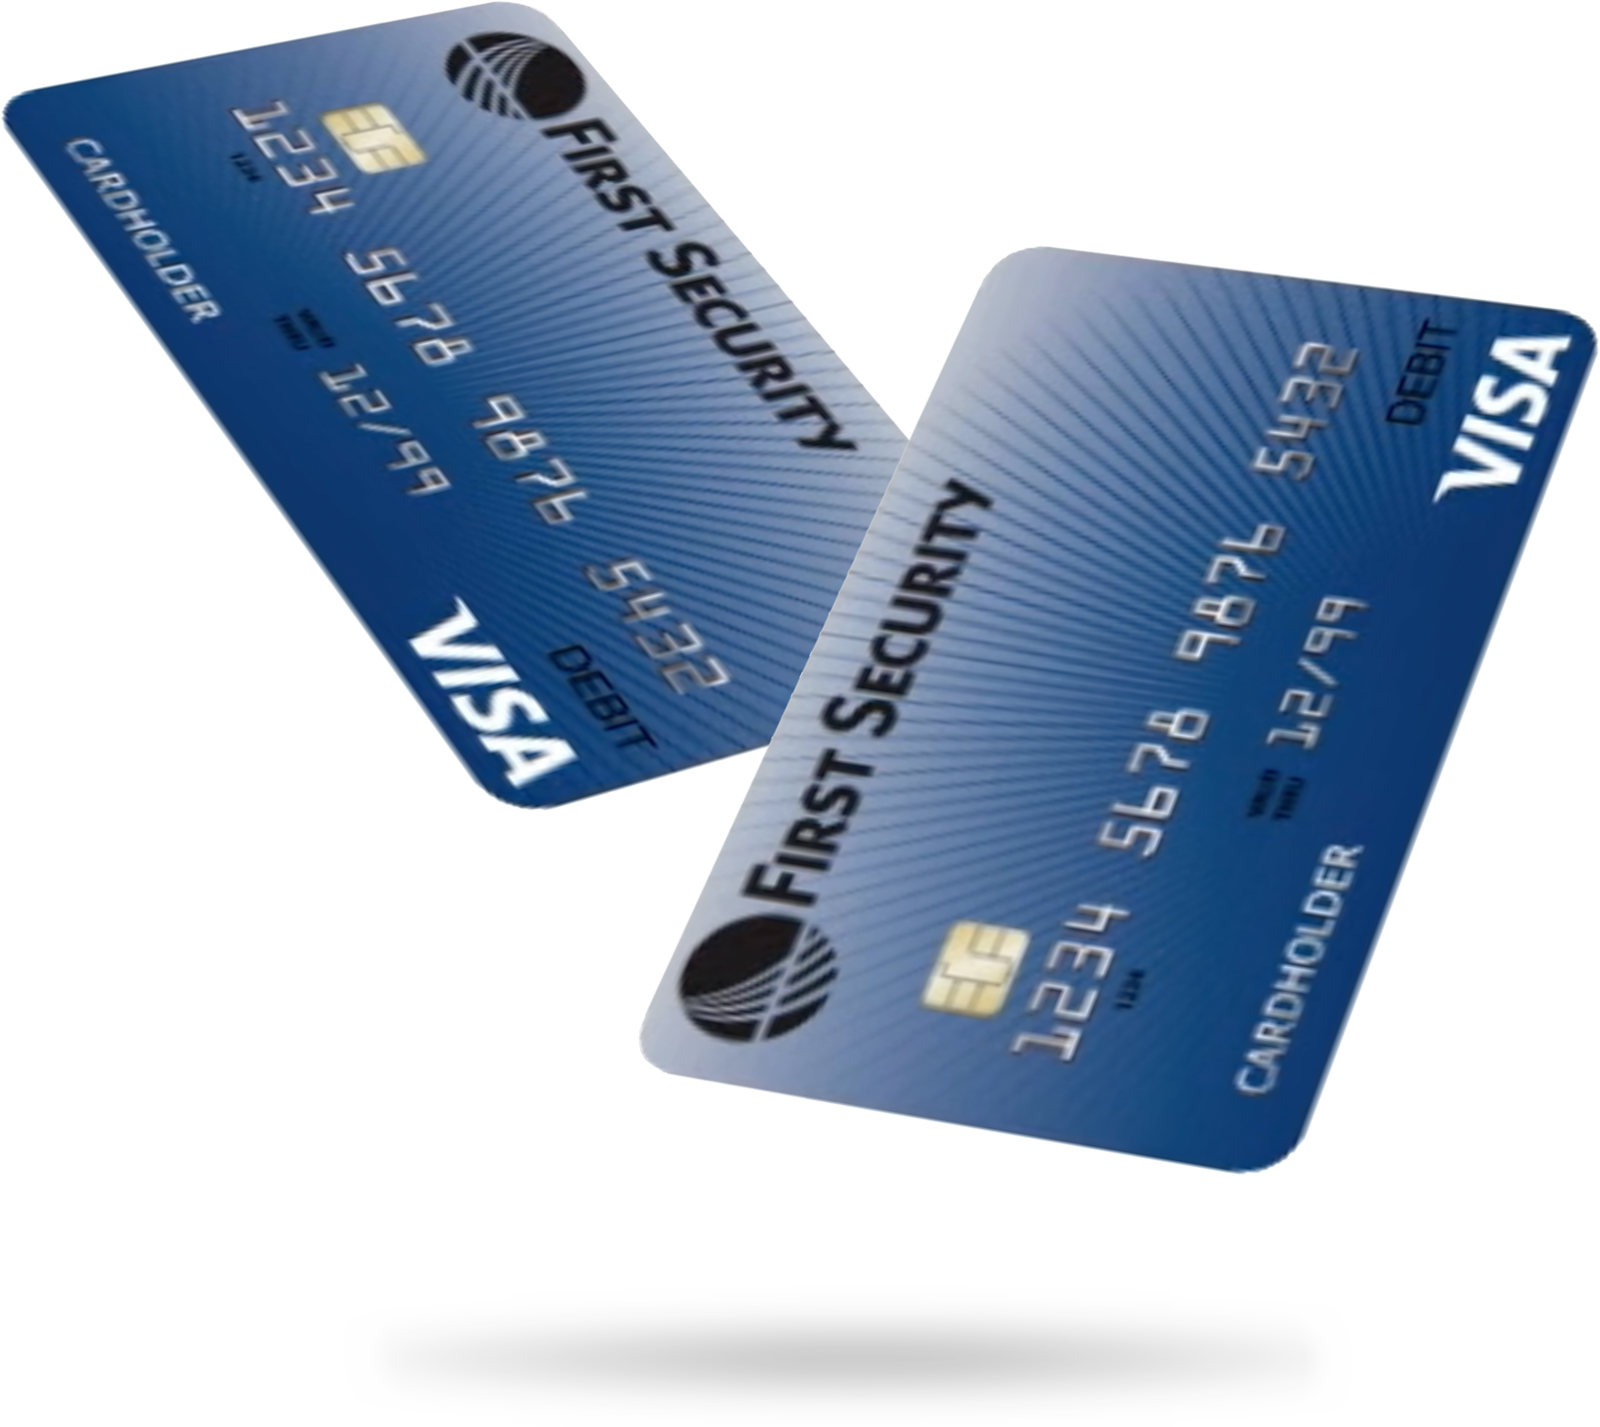 First Security debit cards